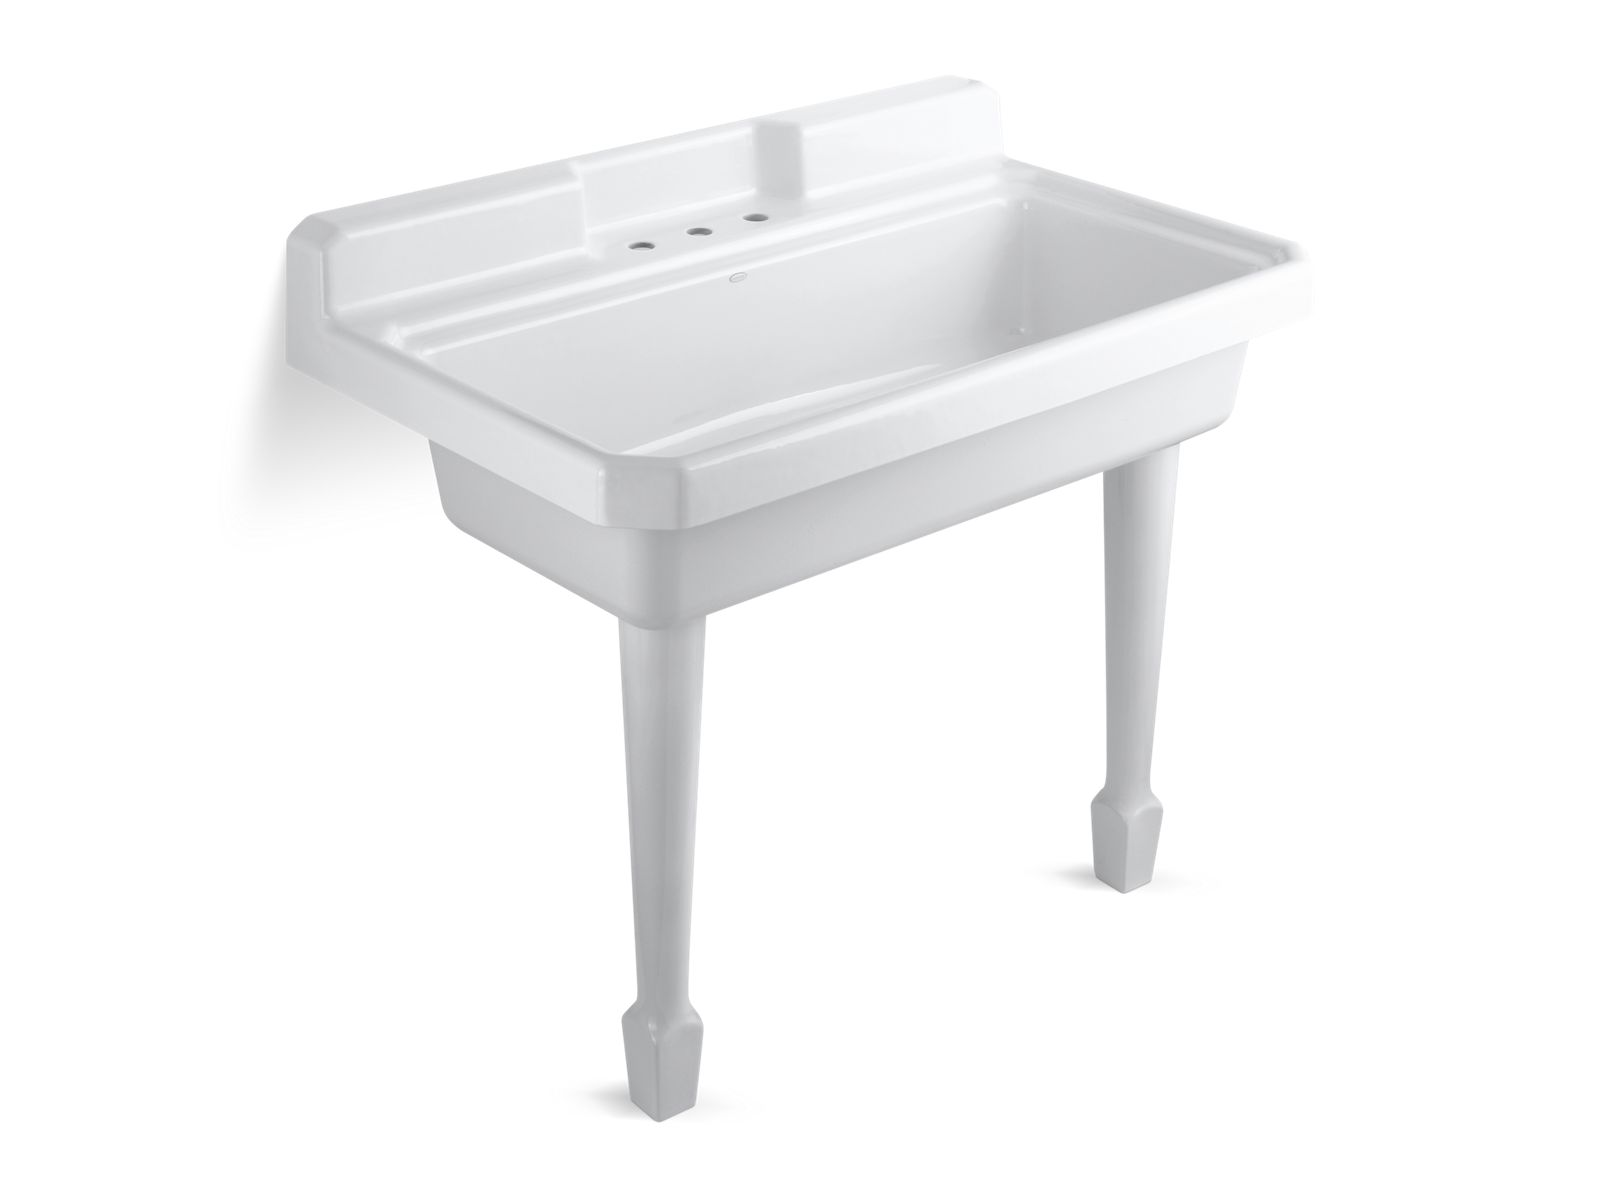 K 6607 3   Harborview Utility Sink With Three Faucet Holes   KOHLER